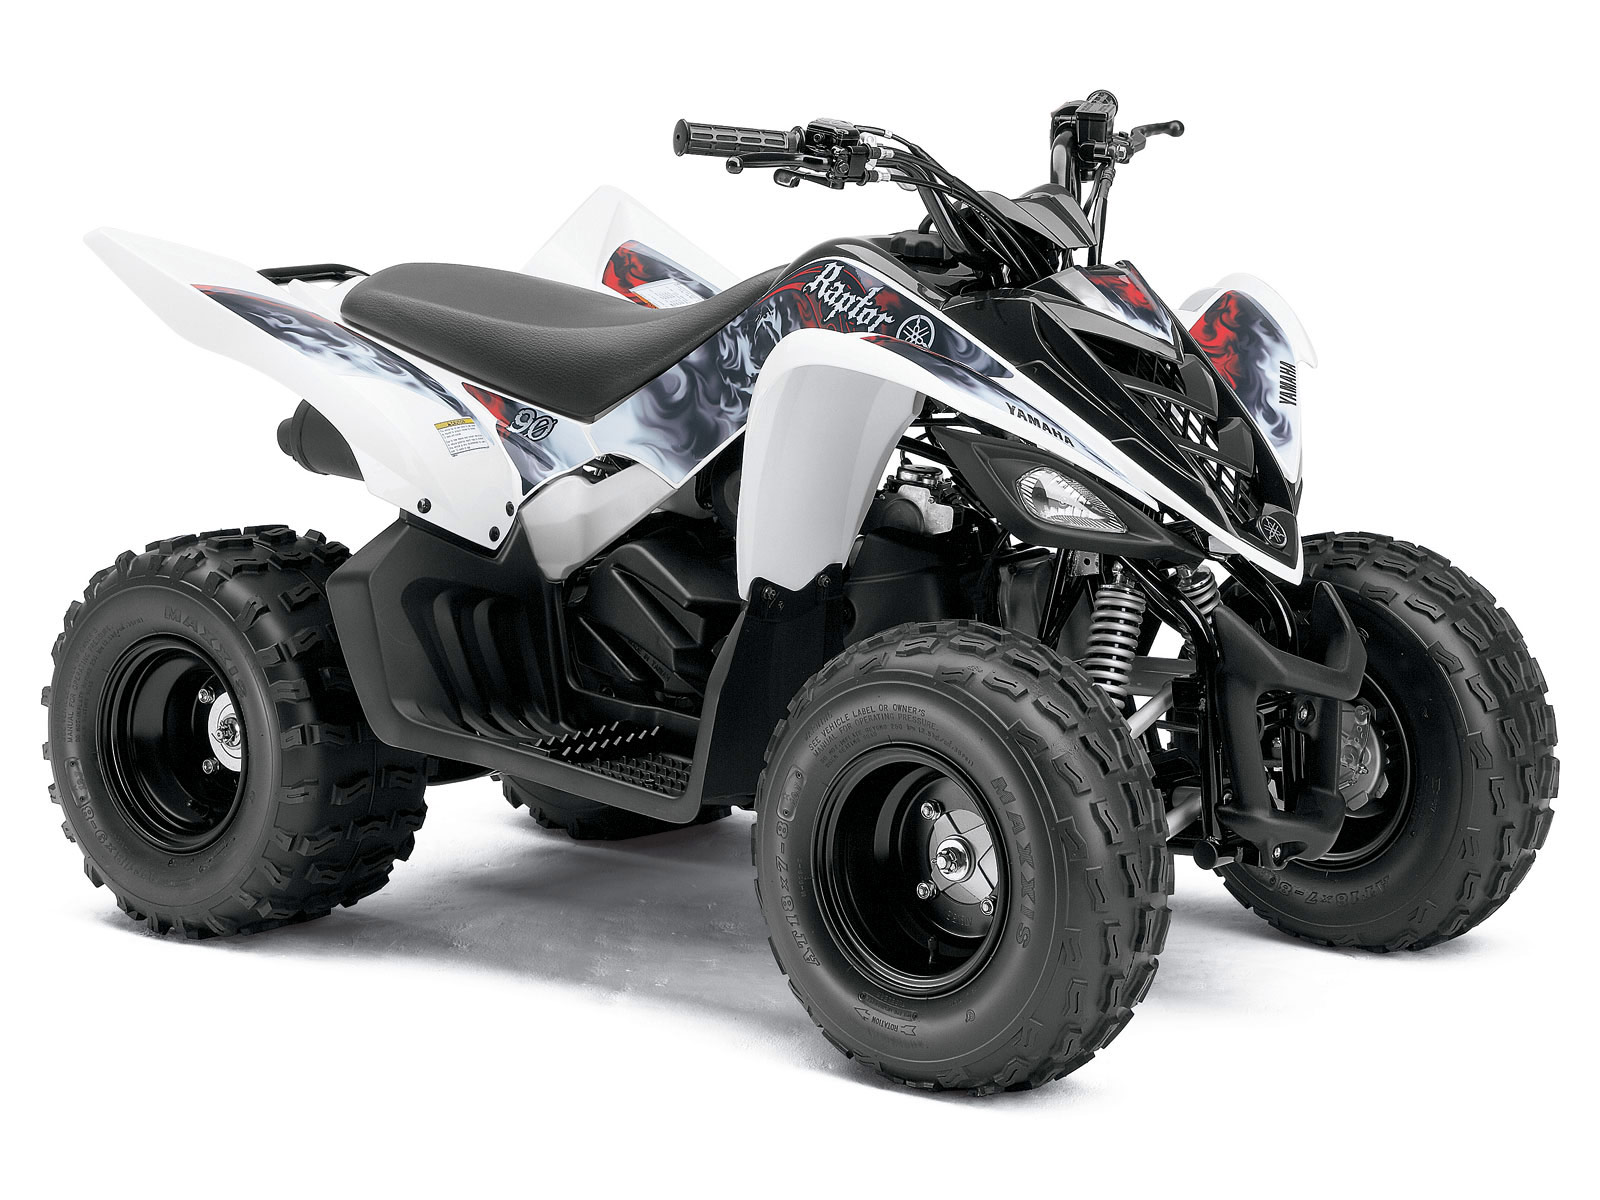 2011 yamaha raptor 90 pictures specs atv accident lawyers for What year is my yamaha atv